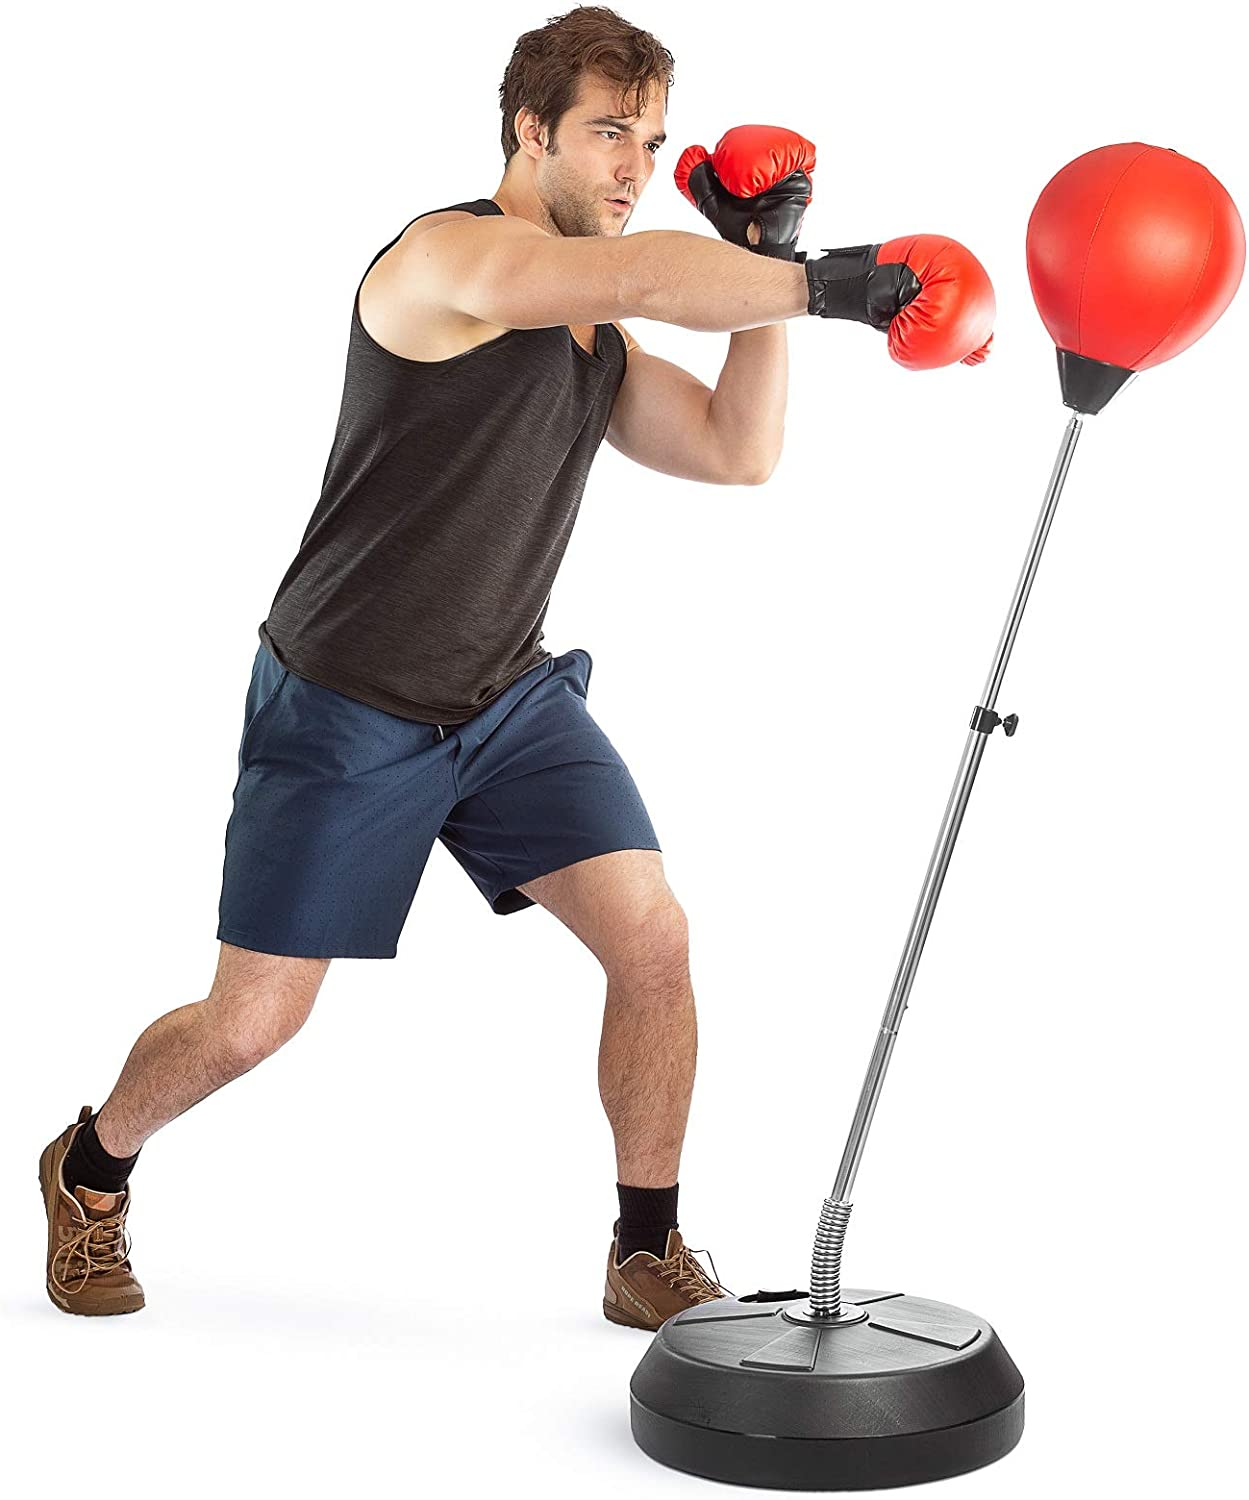 Tech Tools Boxing Ball Set with Punching Bag, Boxing Gloves, Hand Pump & Adjustable Height Stand - Strong Durable Spring Withstands Tough Hits for Stress Relief & Fitness (Adult) : Sports & Outdoors